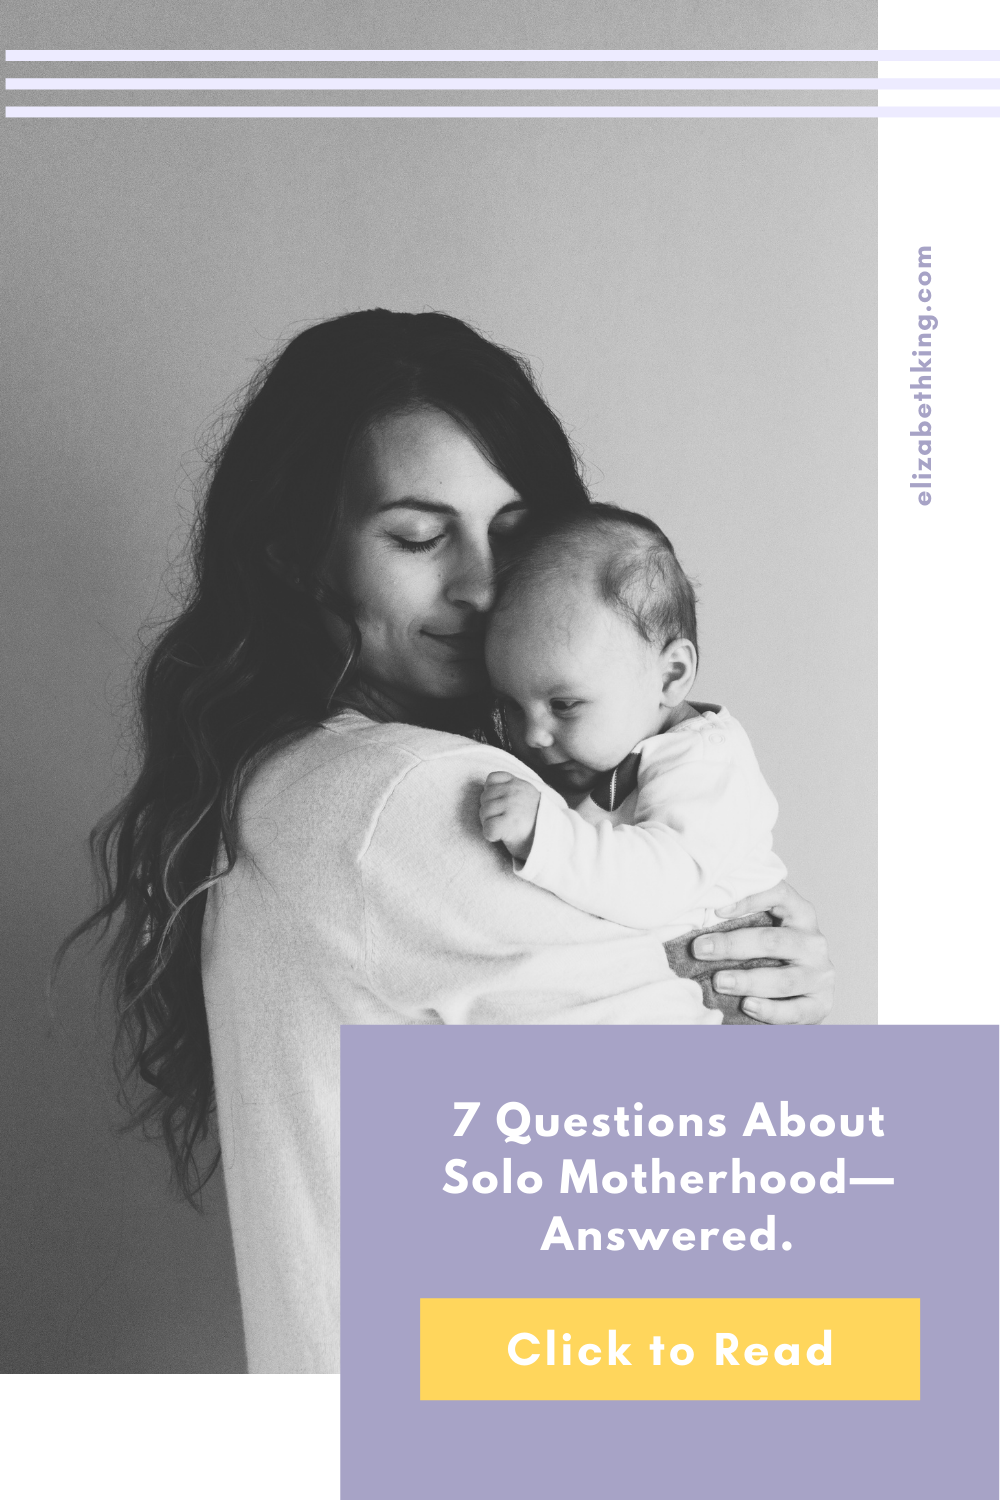 7 Questions About Solo Motherhood—Answered. | ElizabethKing.com